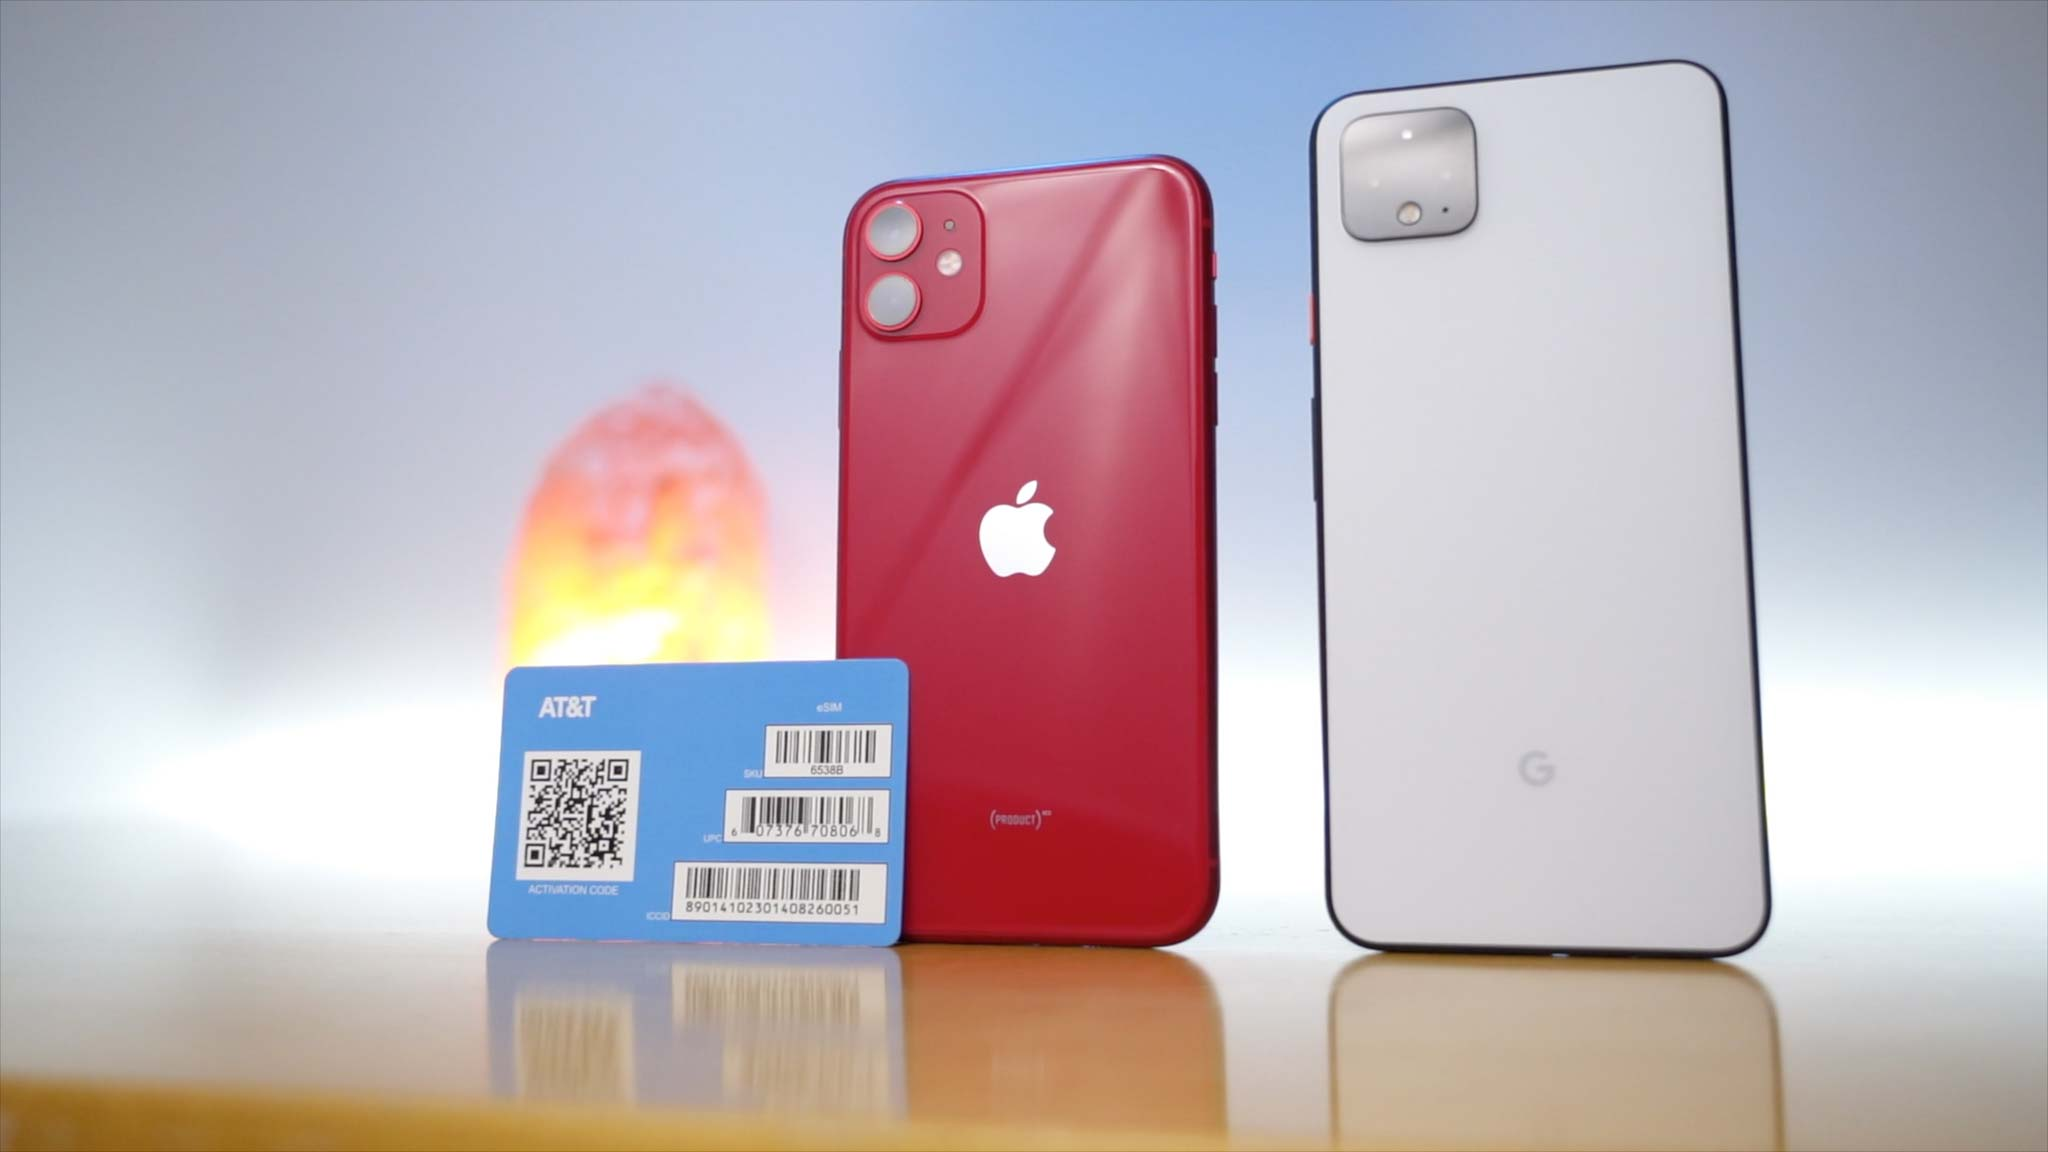 iPhone 11 in Product Red next to Clearly White Pixel 4 XL with AT&T eSIM card propped up on iPhone 11